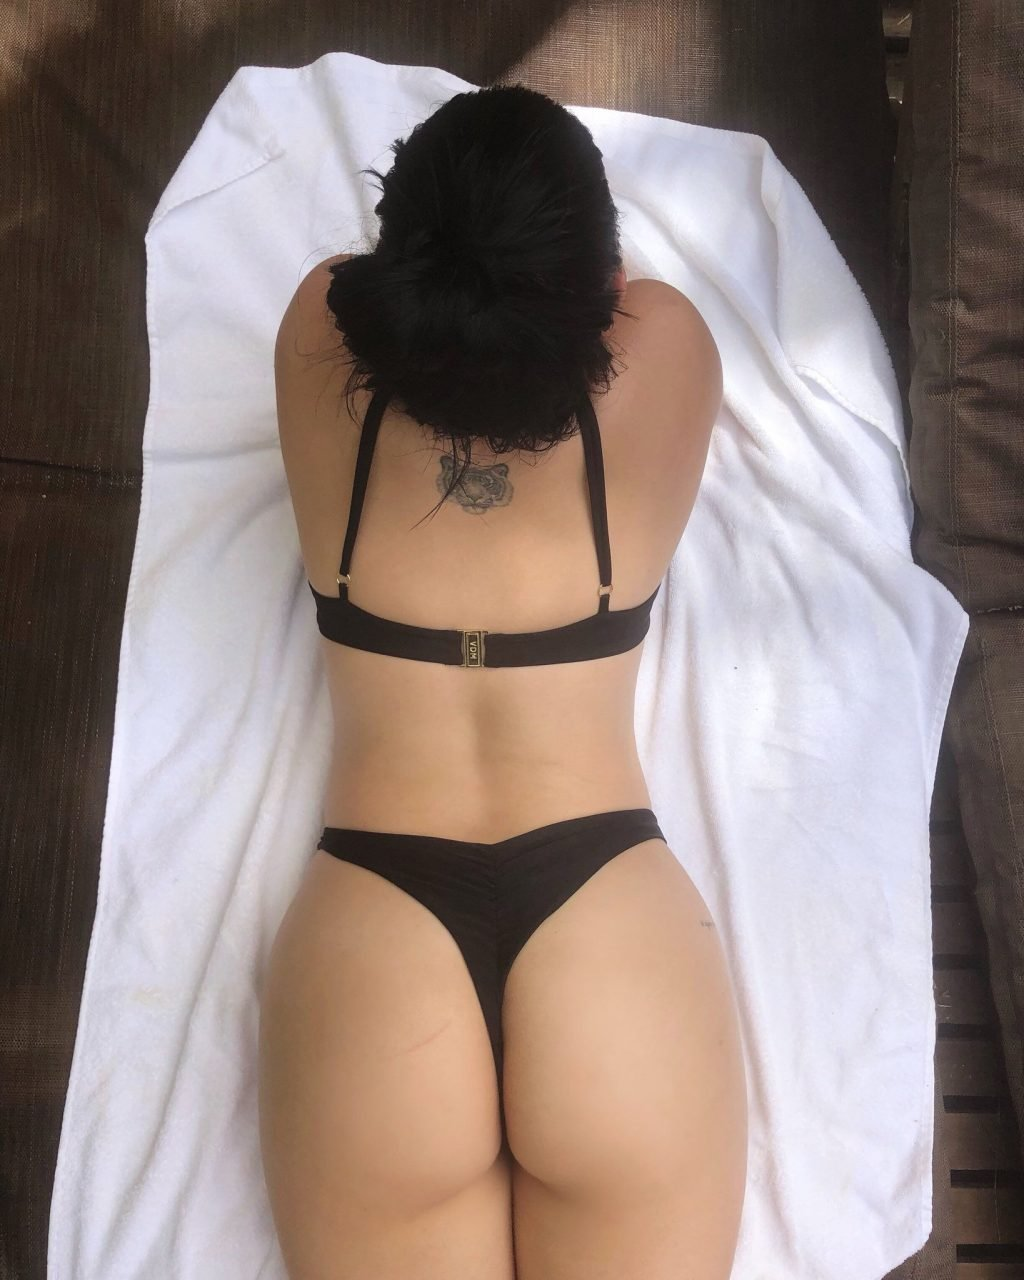 naked pics of ariel winter